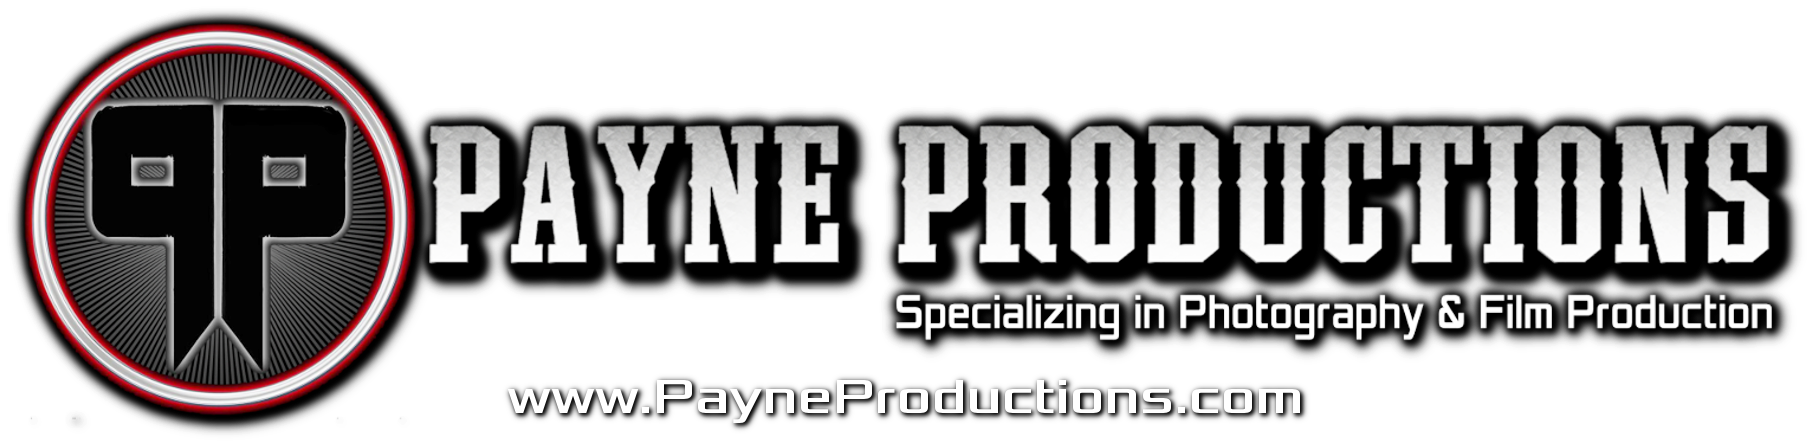 PAYNE PRODUCTIONS LOGO 2016.png